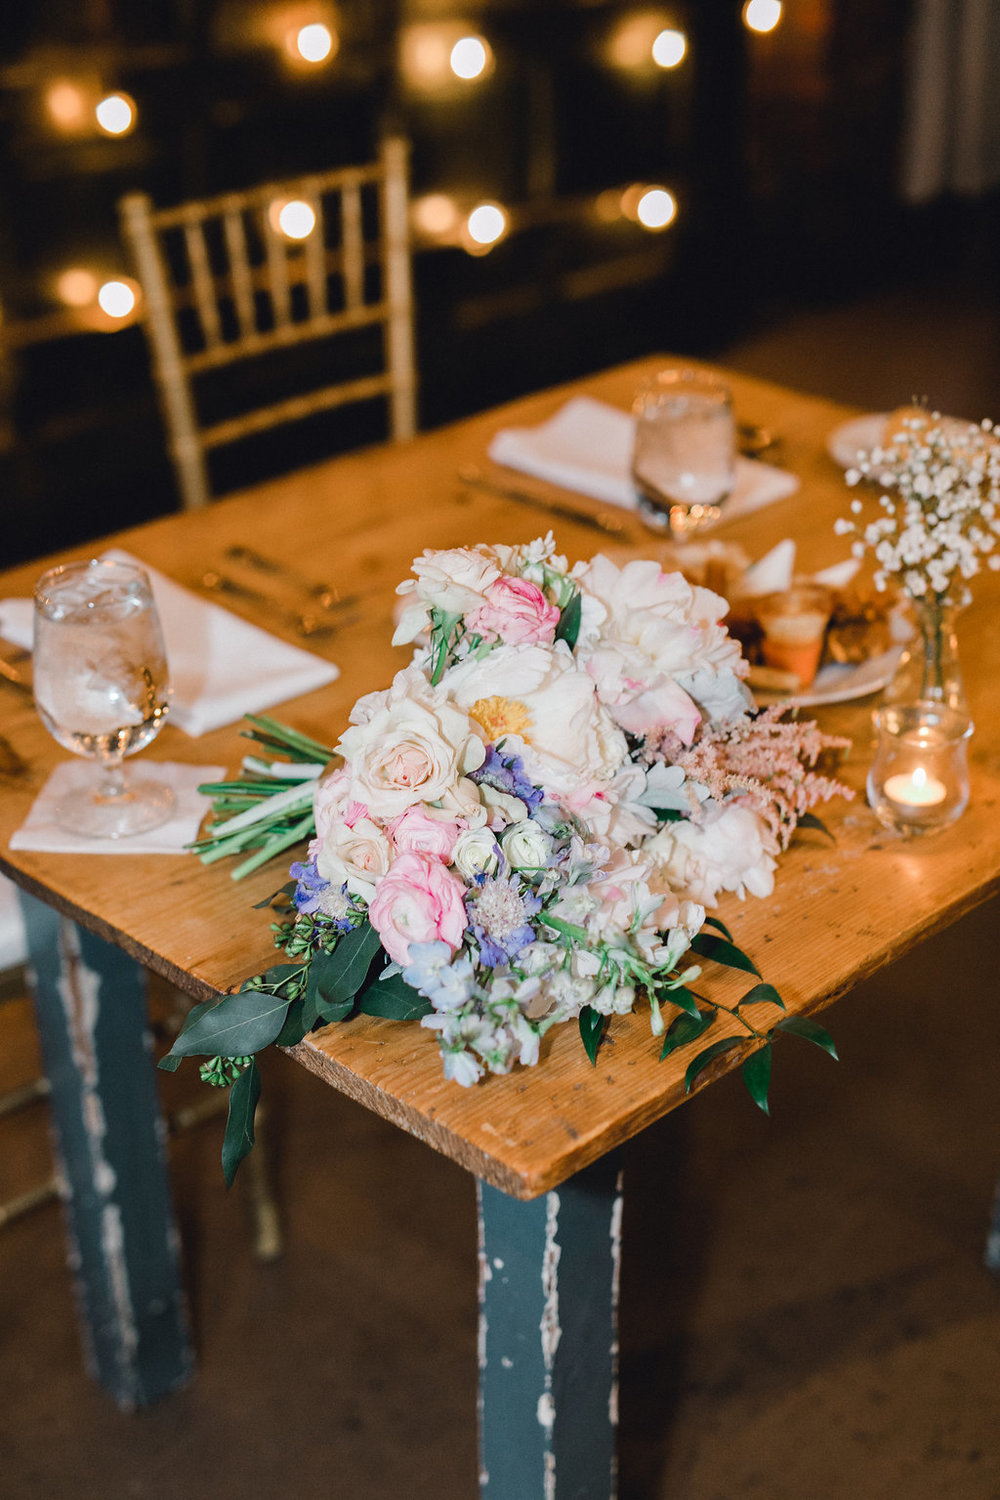 savannah-bridal-shop-i-and-b-florals-sonya-and-josh-colorful-rustic-boho-wedding-florals-at-soho-south-cafe-savannah-ga-wedding-danielle-george-photography-28.JPG